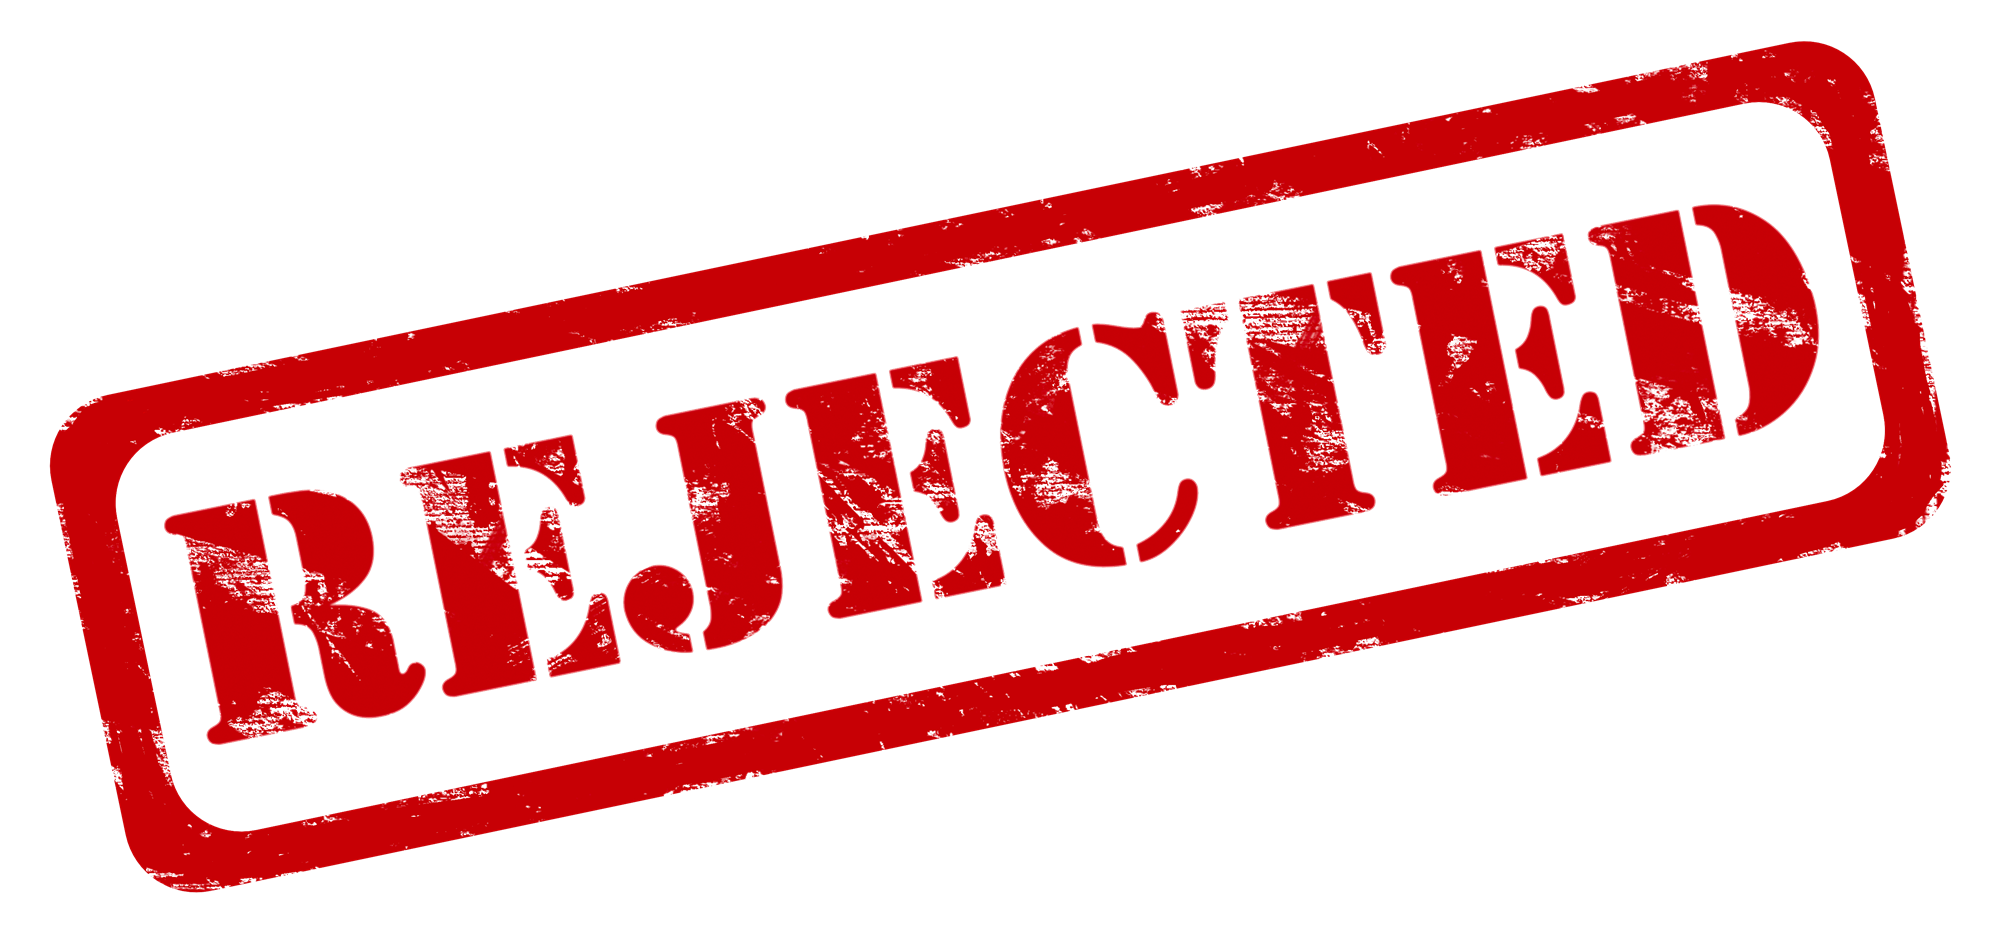 Approved stamp png. Rejected transparent images pluspng